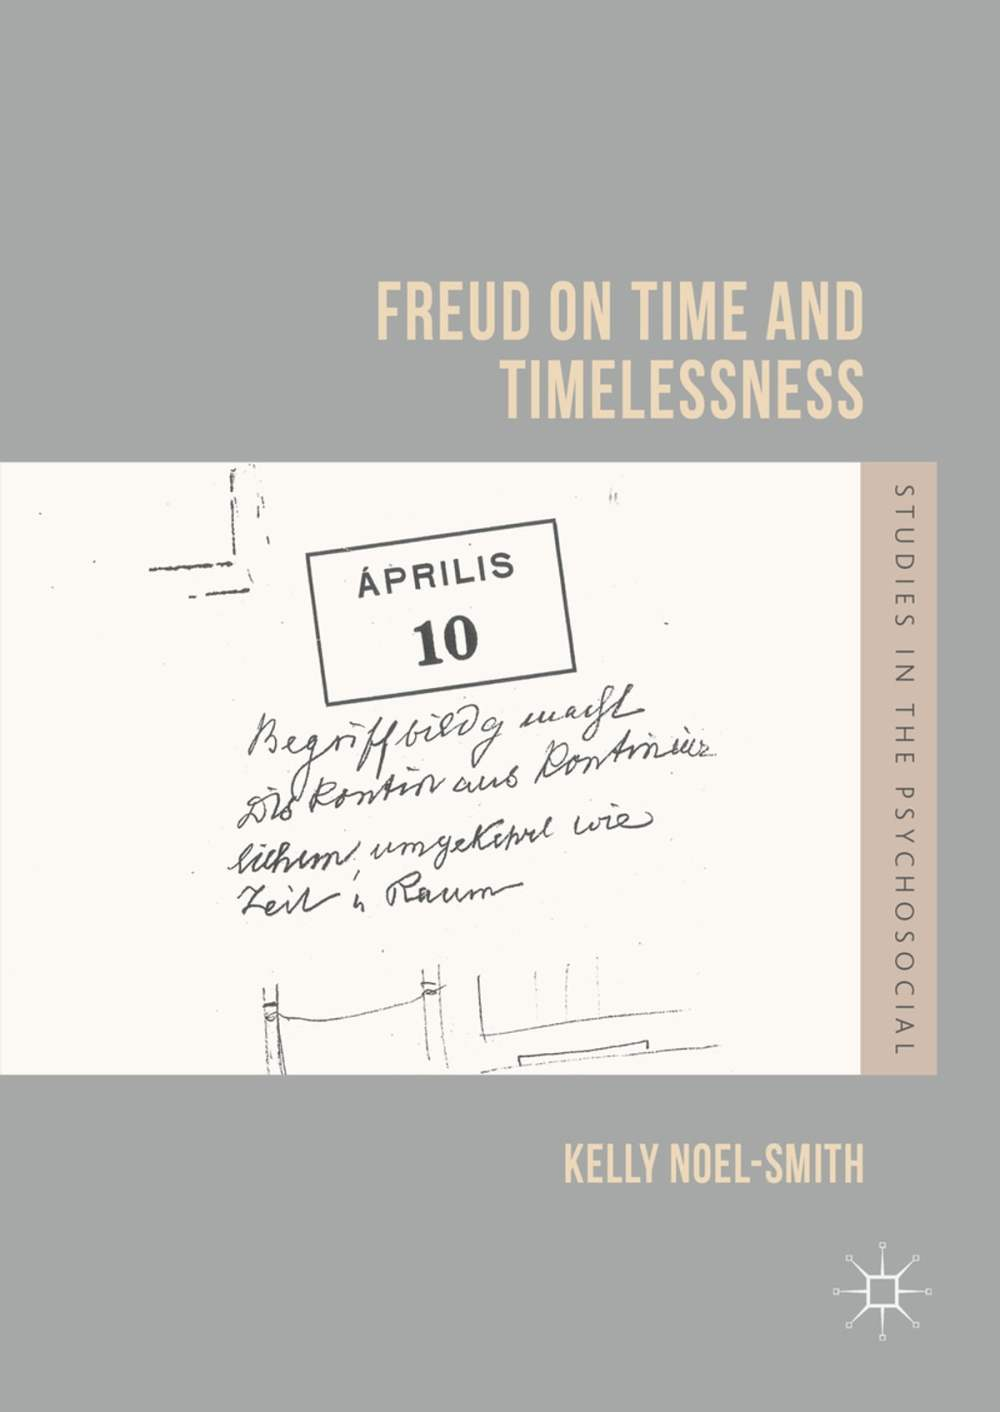 medium resolution of freud on time and timelessness ebook by kelly noel smith 9781137597212 rakuten kobo